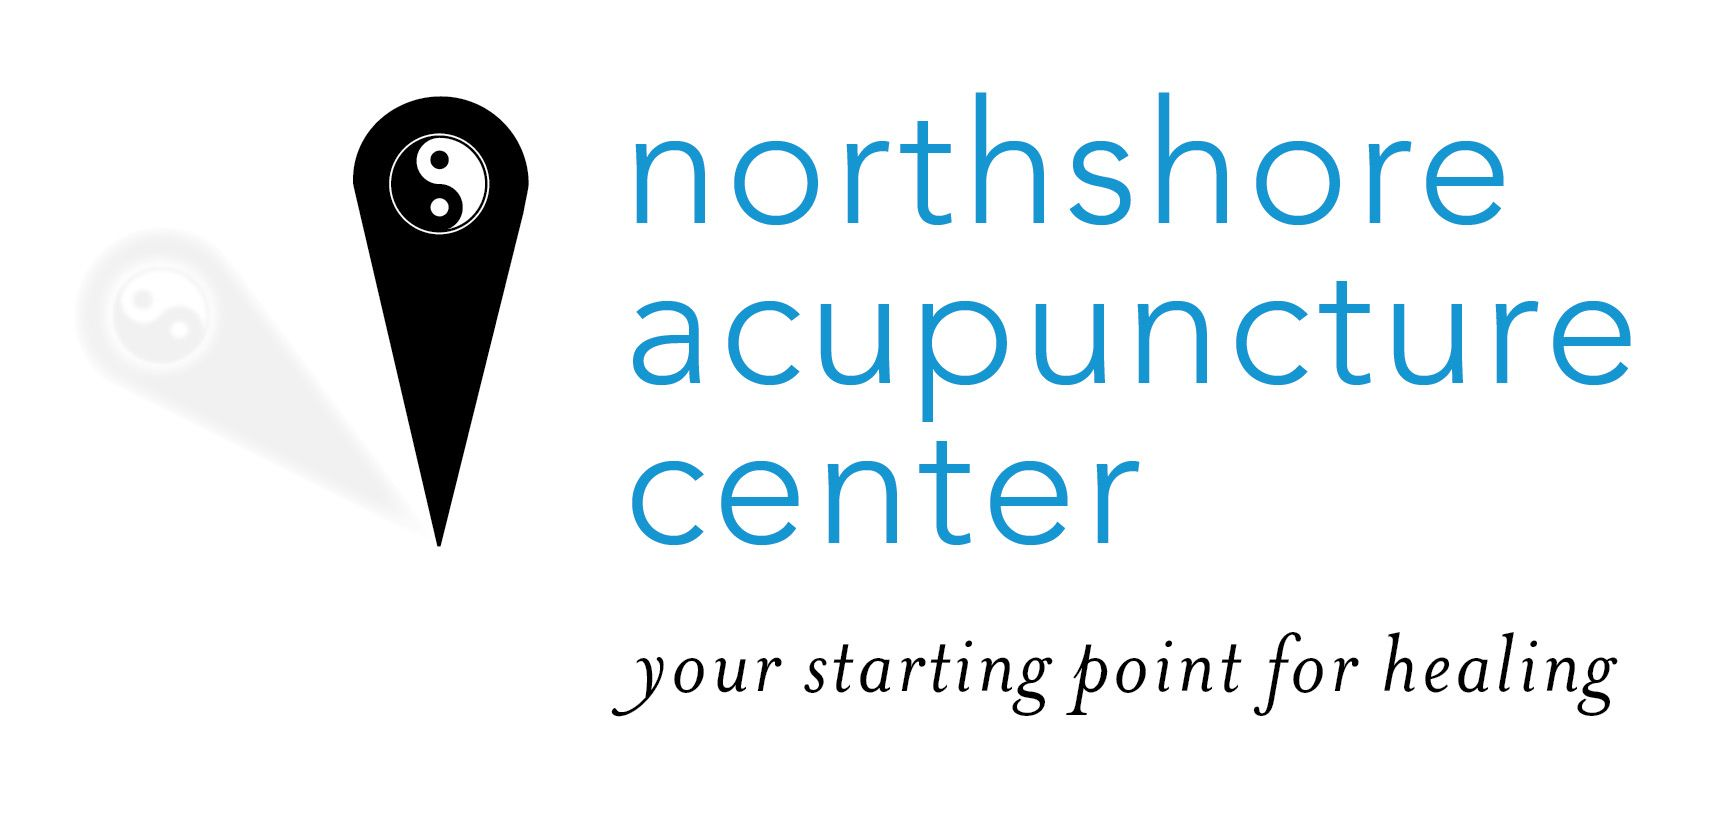 Northshore Acupuncture Center Logo